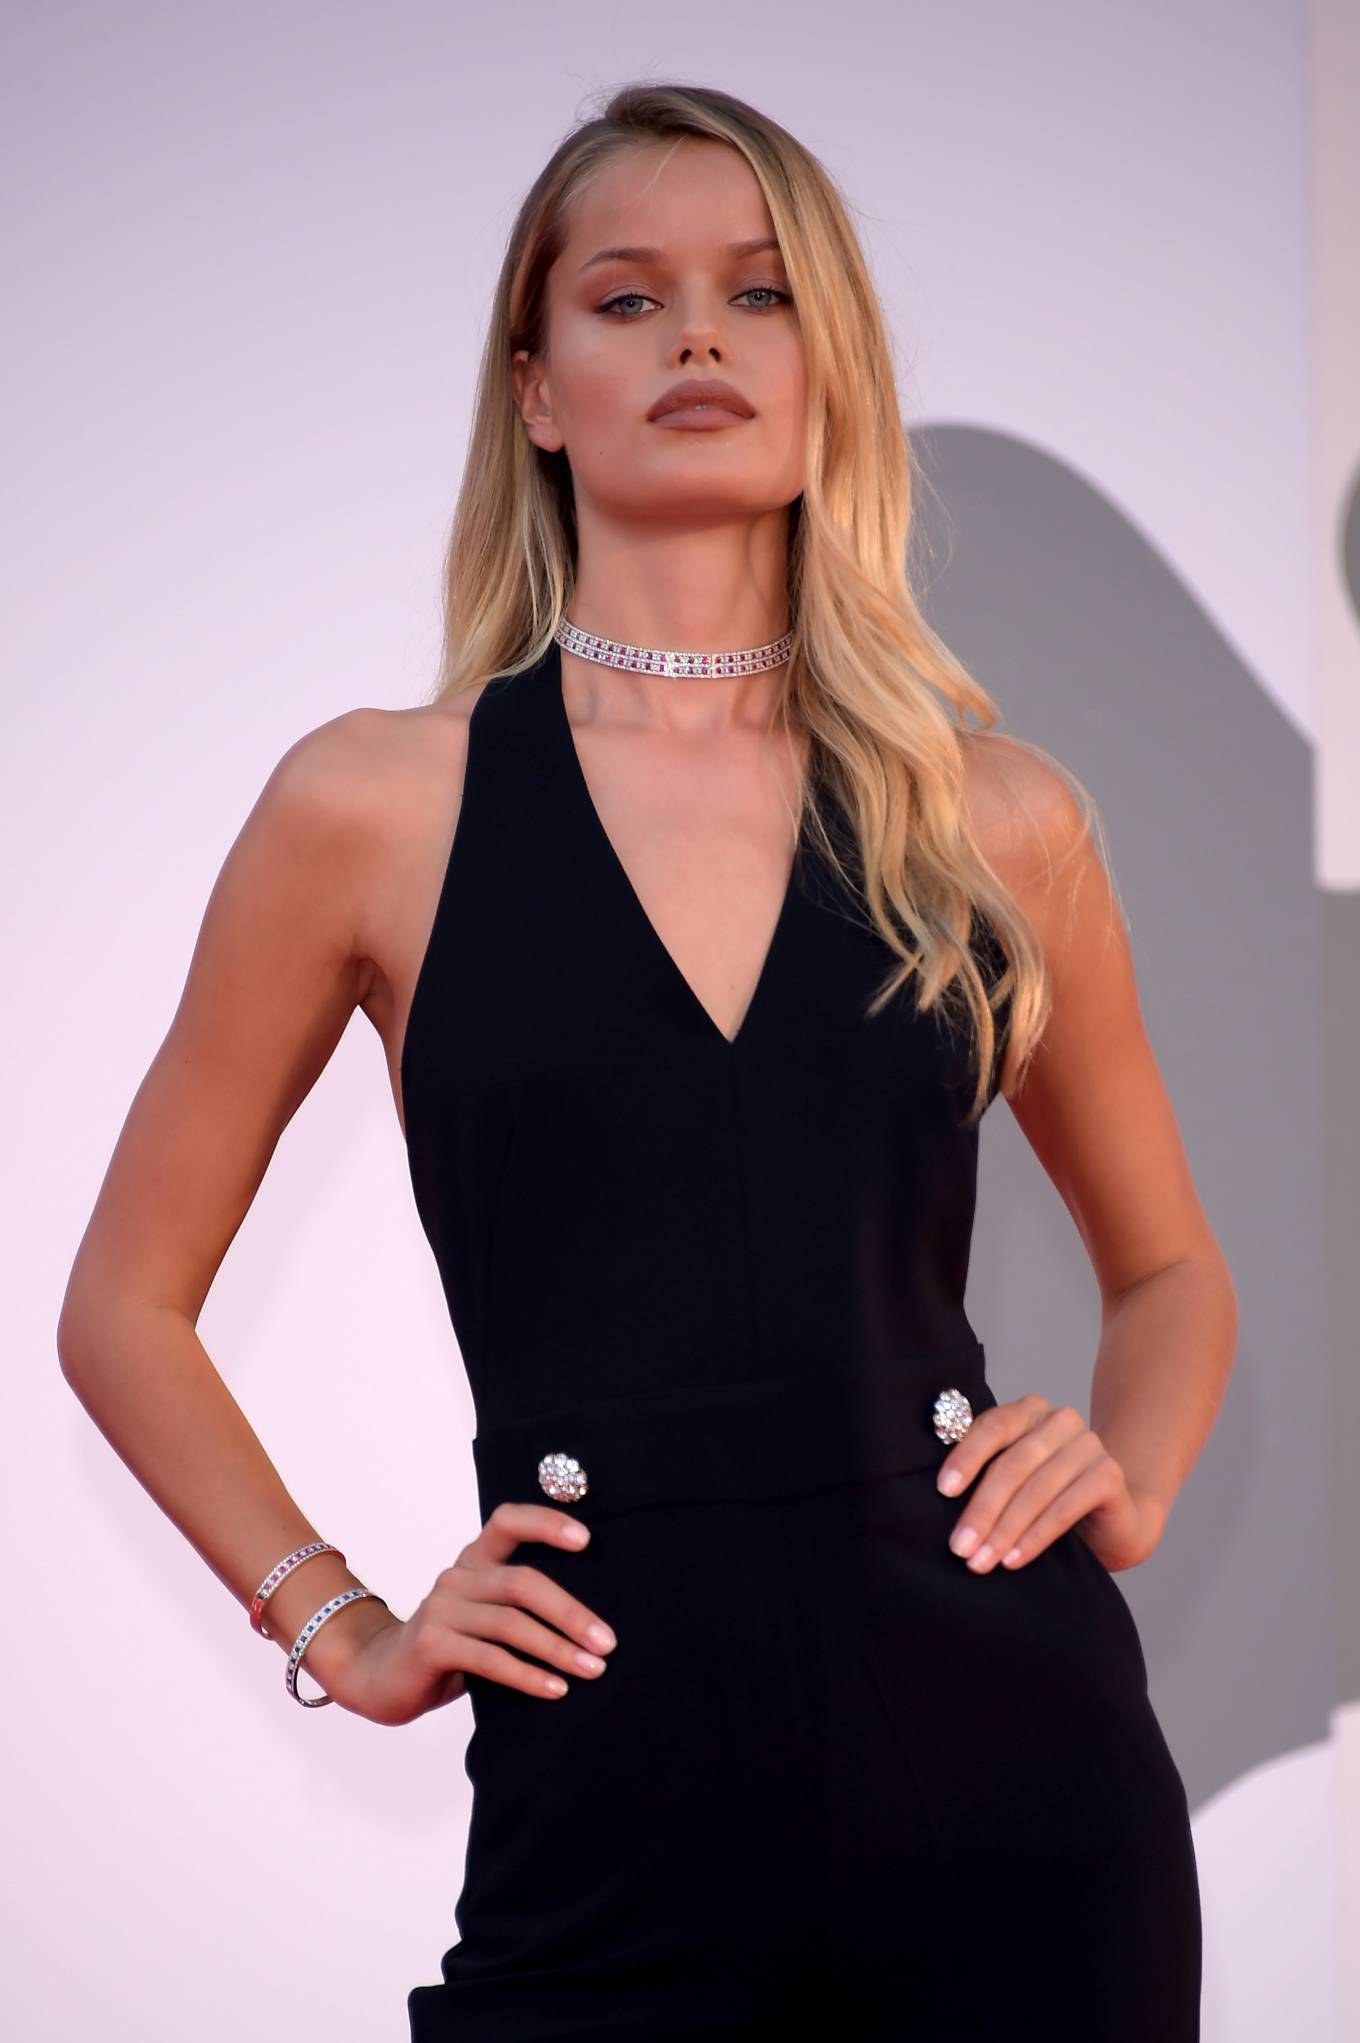 Frida Aasen wearing silver open toe sandals with high heel and wide strap